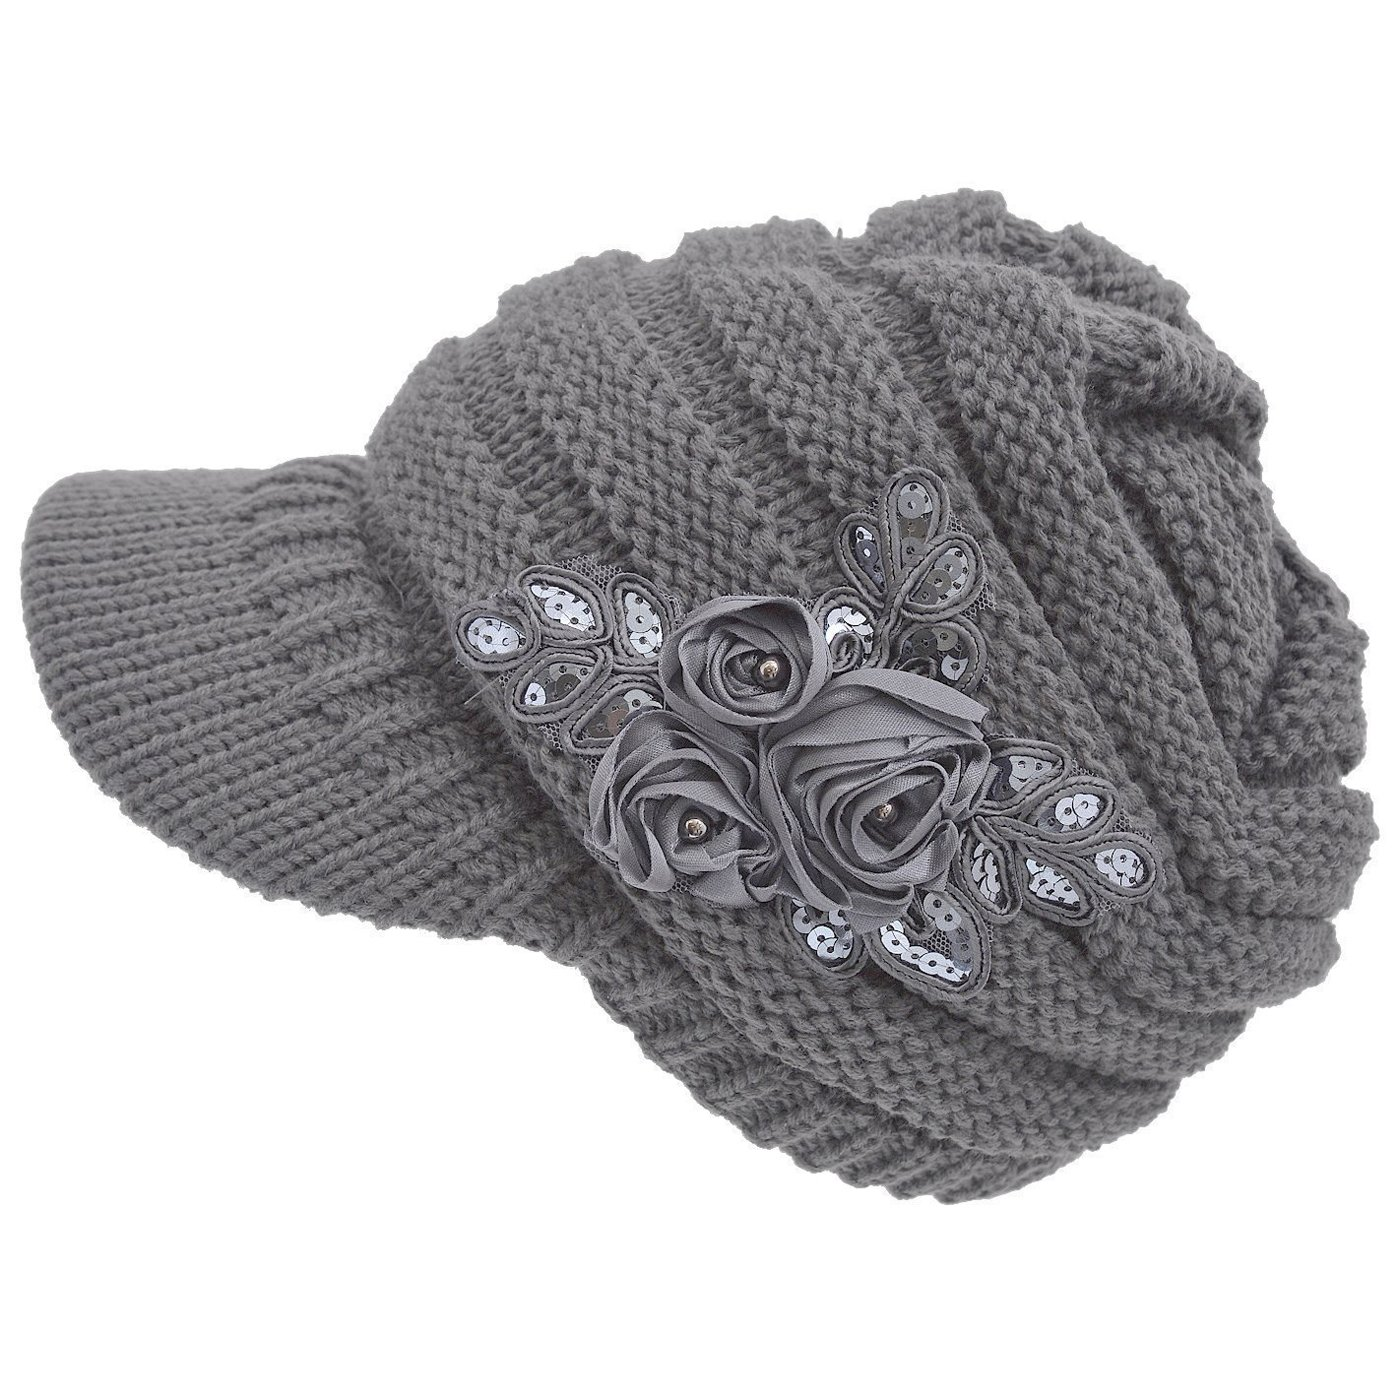 3 Ply Disposable Face Mask 60 Pcs Individually Packed Winter Hat Wh 97 Nykkola Women Cable Knit Warm Beanie Hats Newsboy Cap Visor With Sequined Flower